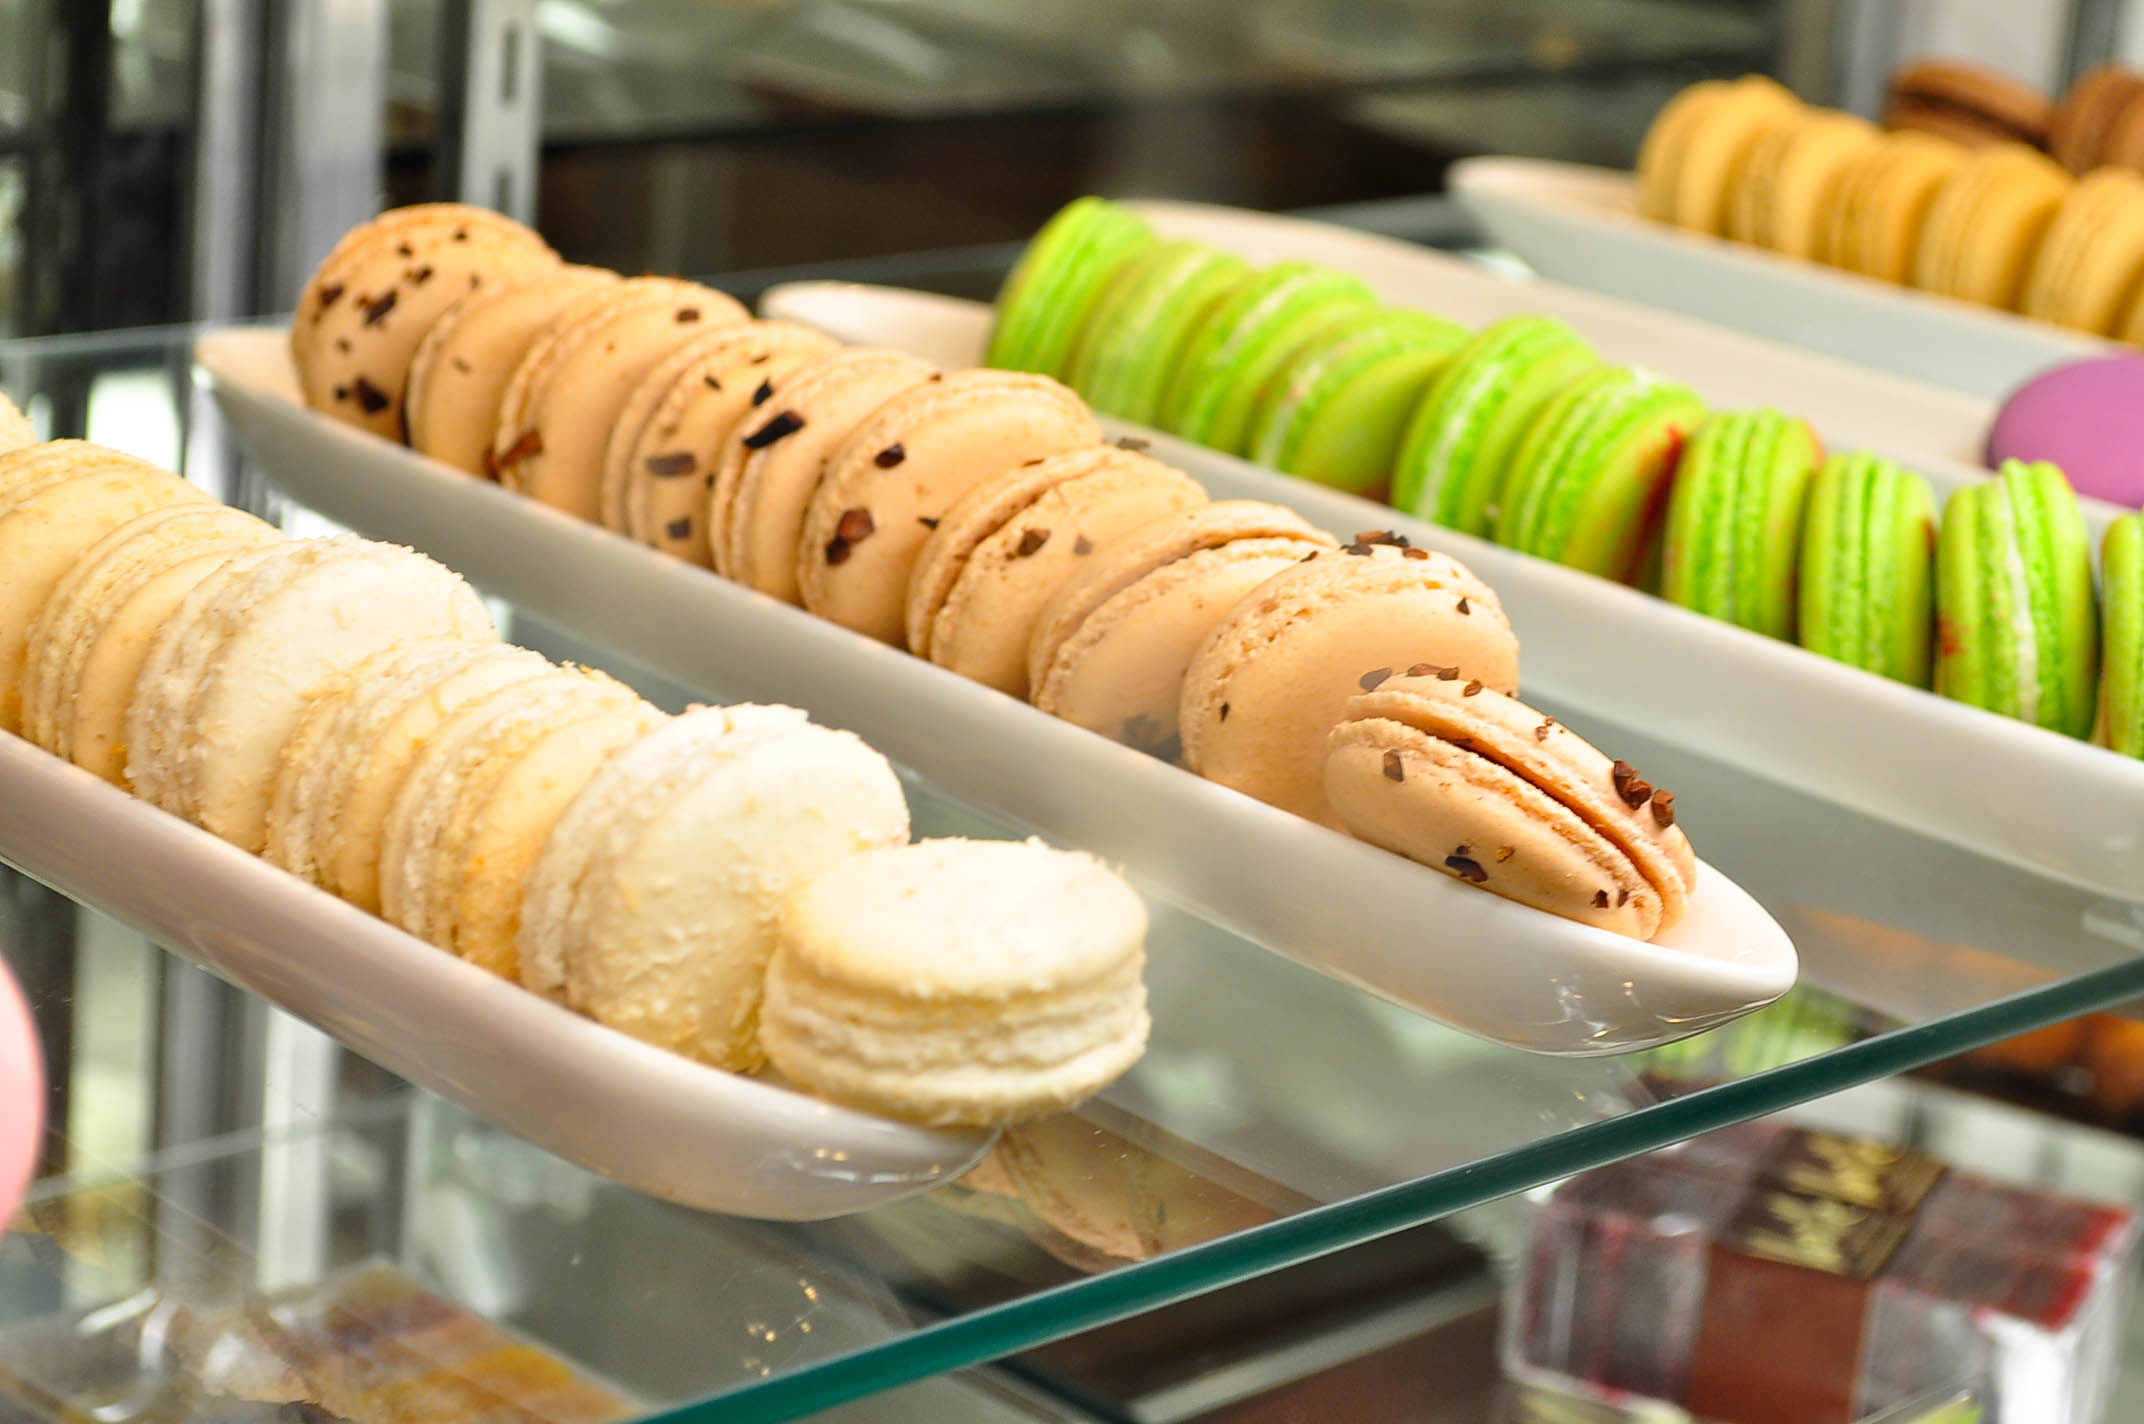 Displays of colorful macaroon cookies